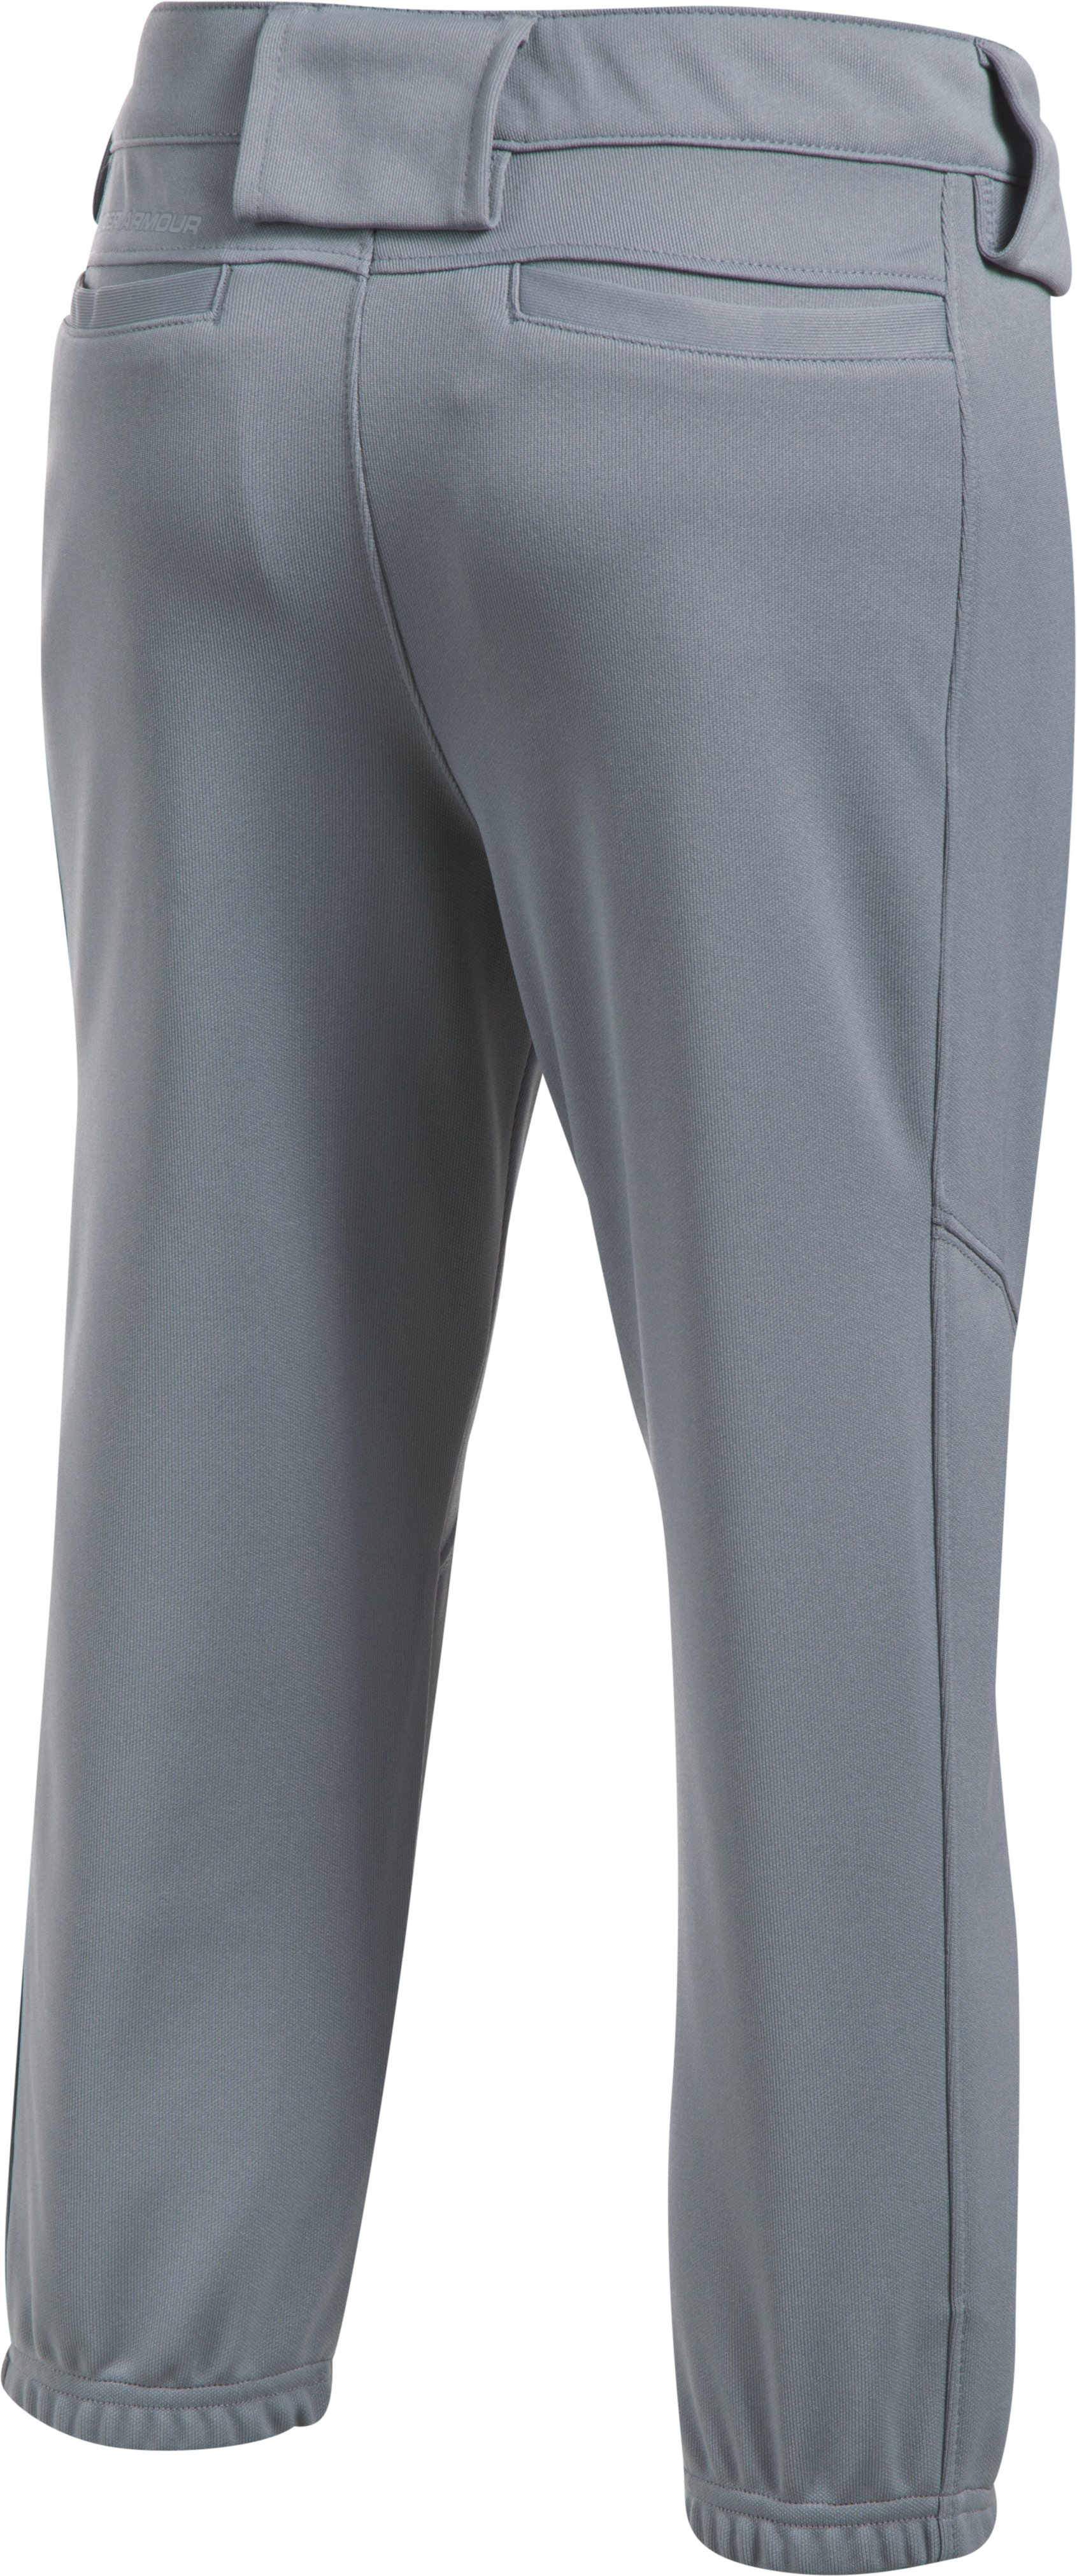 Girls' UA Base Runner Softball Pants, Steel, undefined